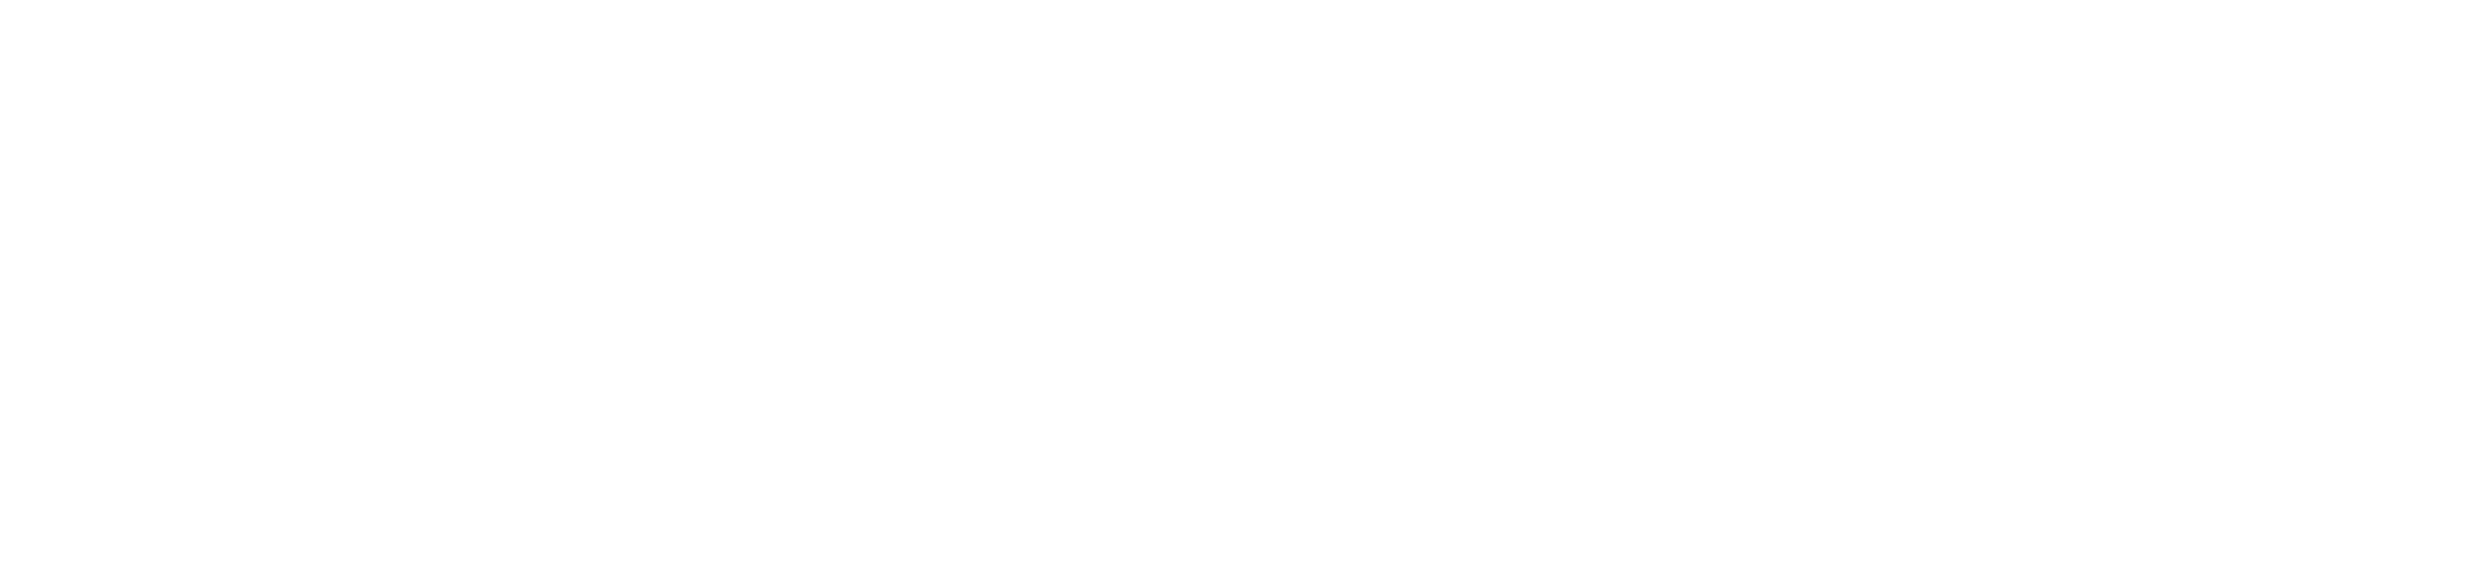 www.adventistas.org.do